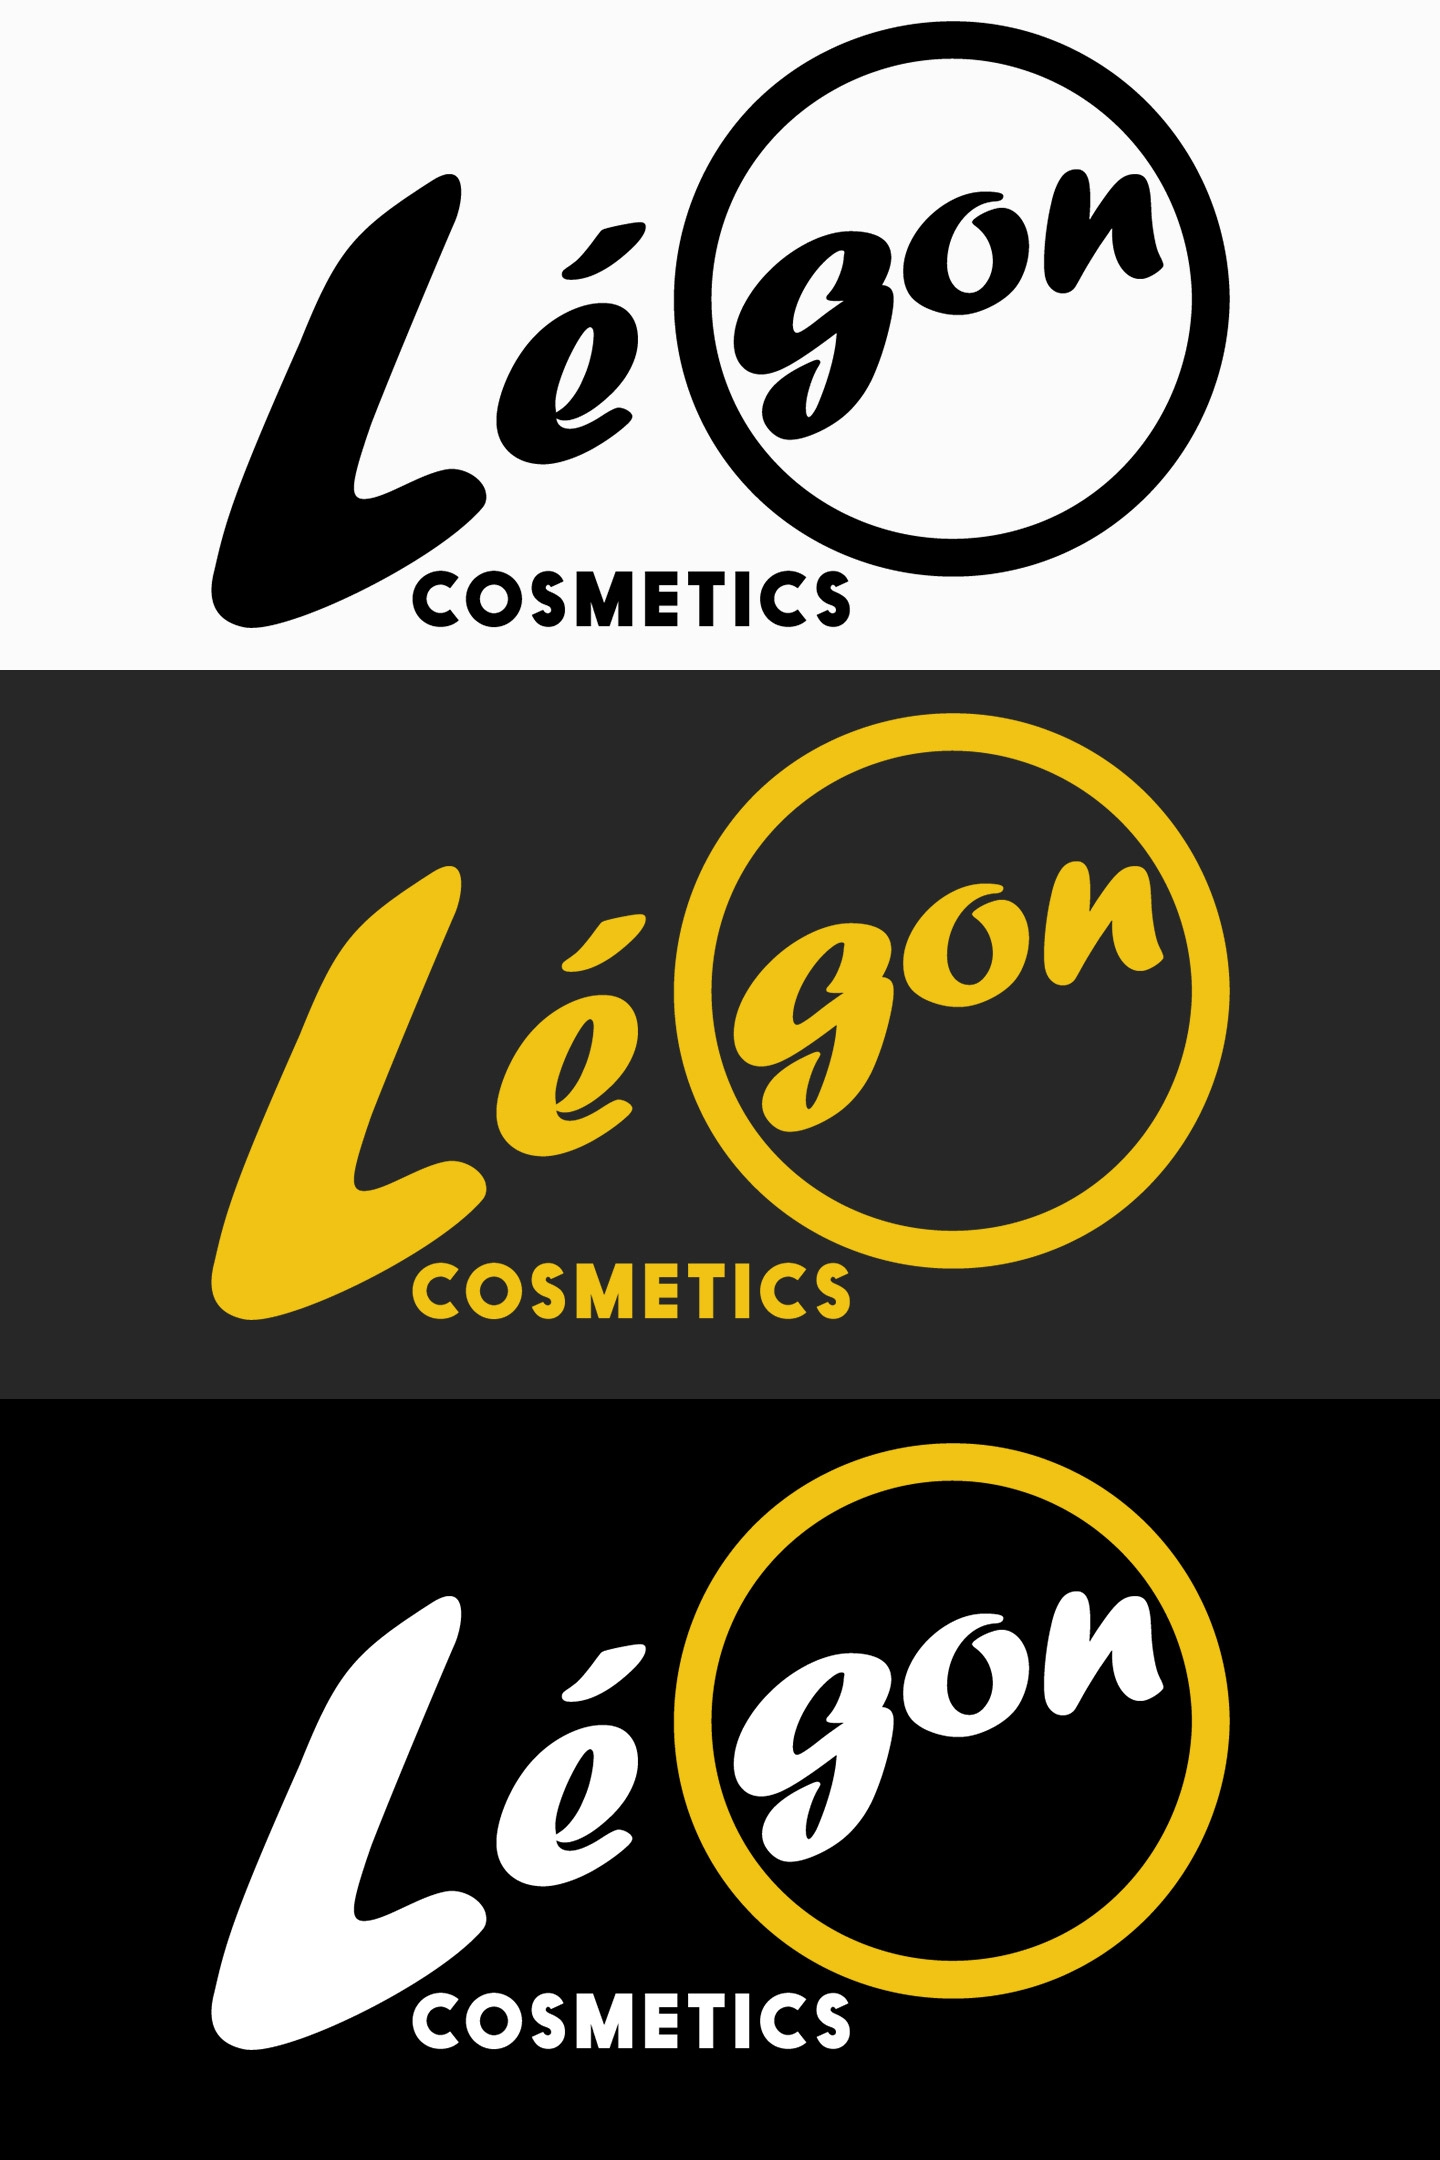 Legon Cosmetics